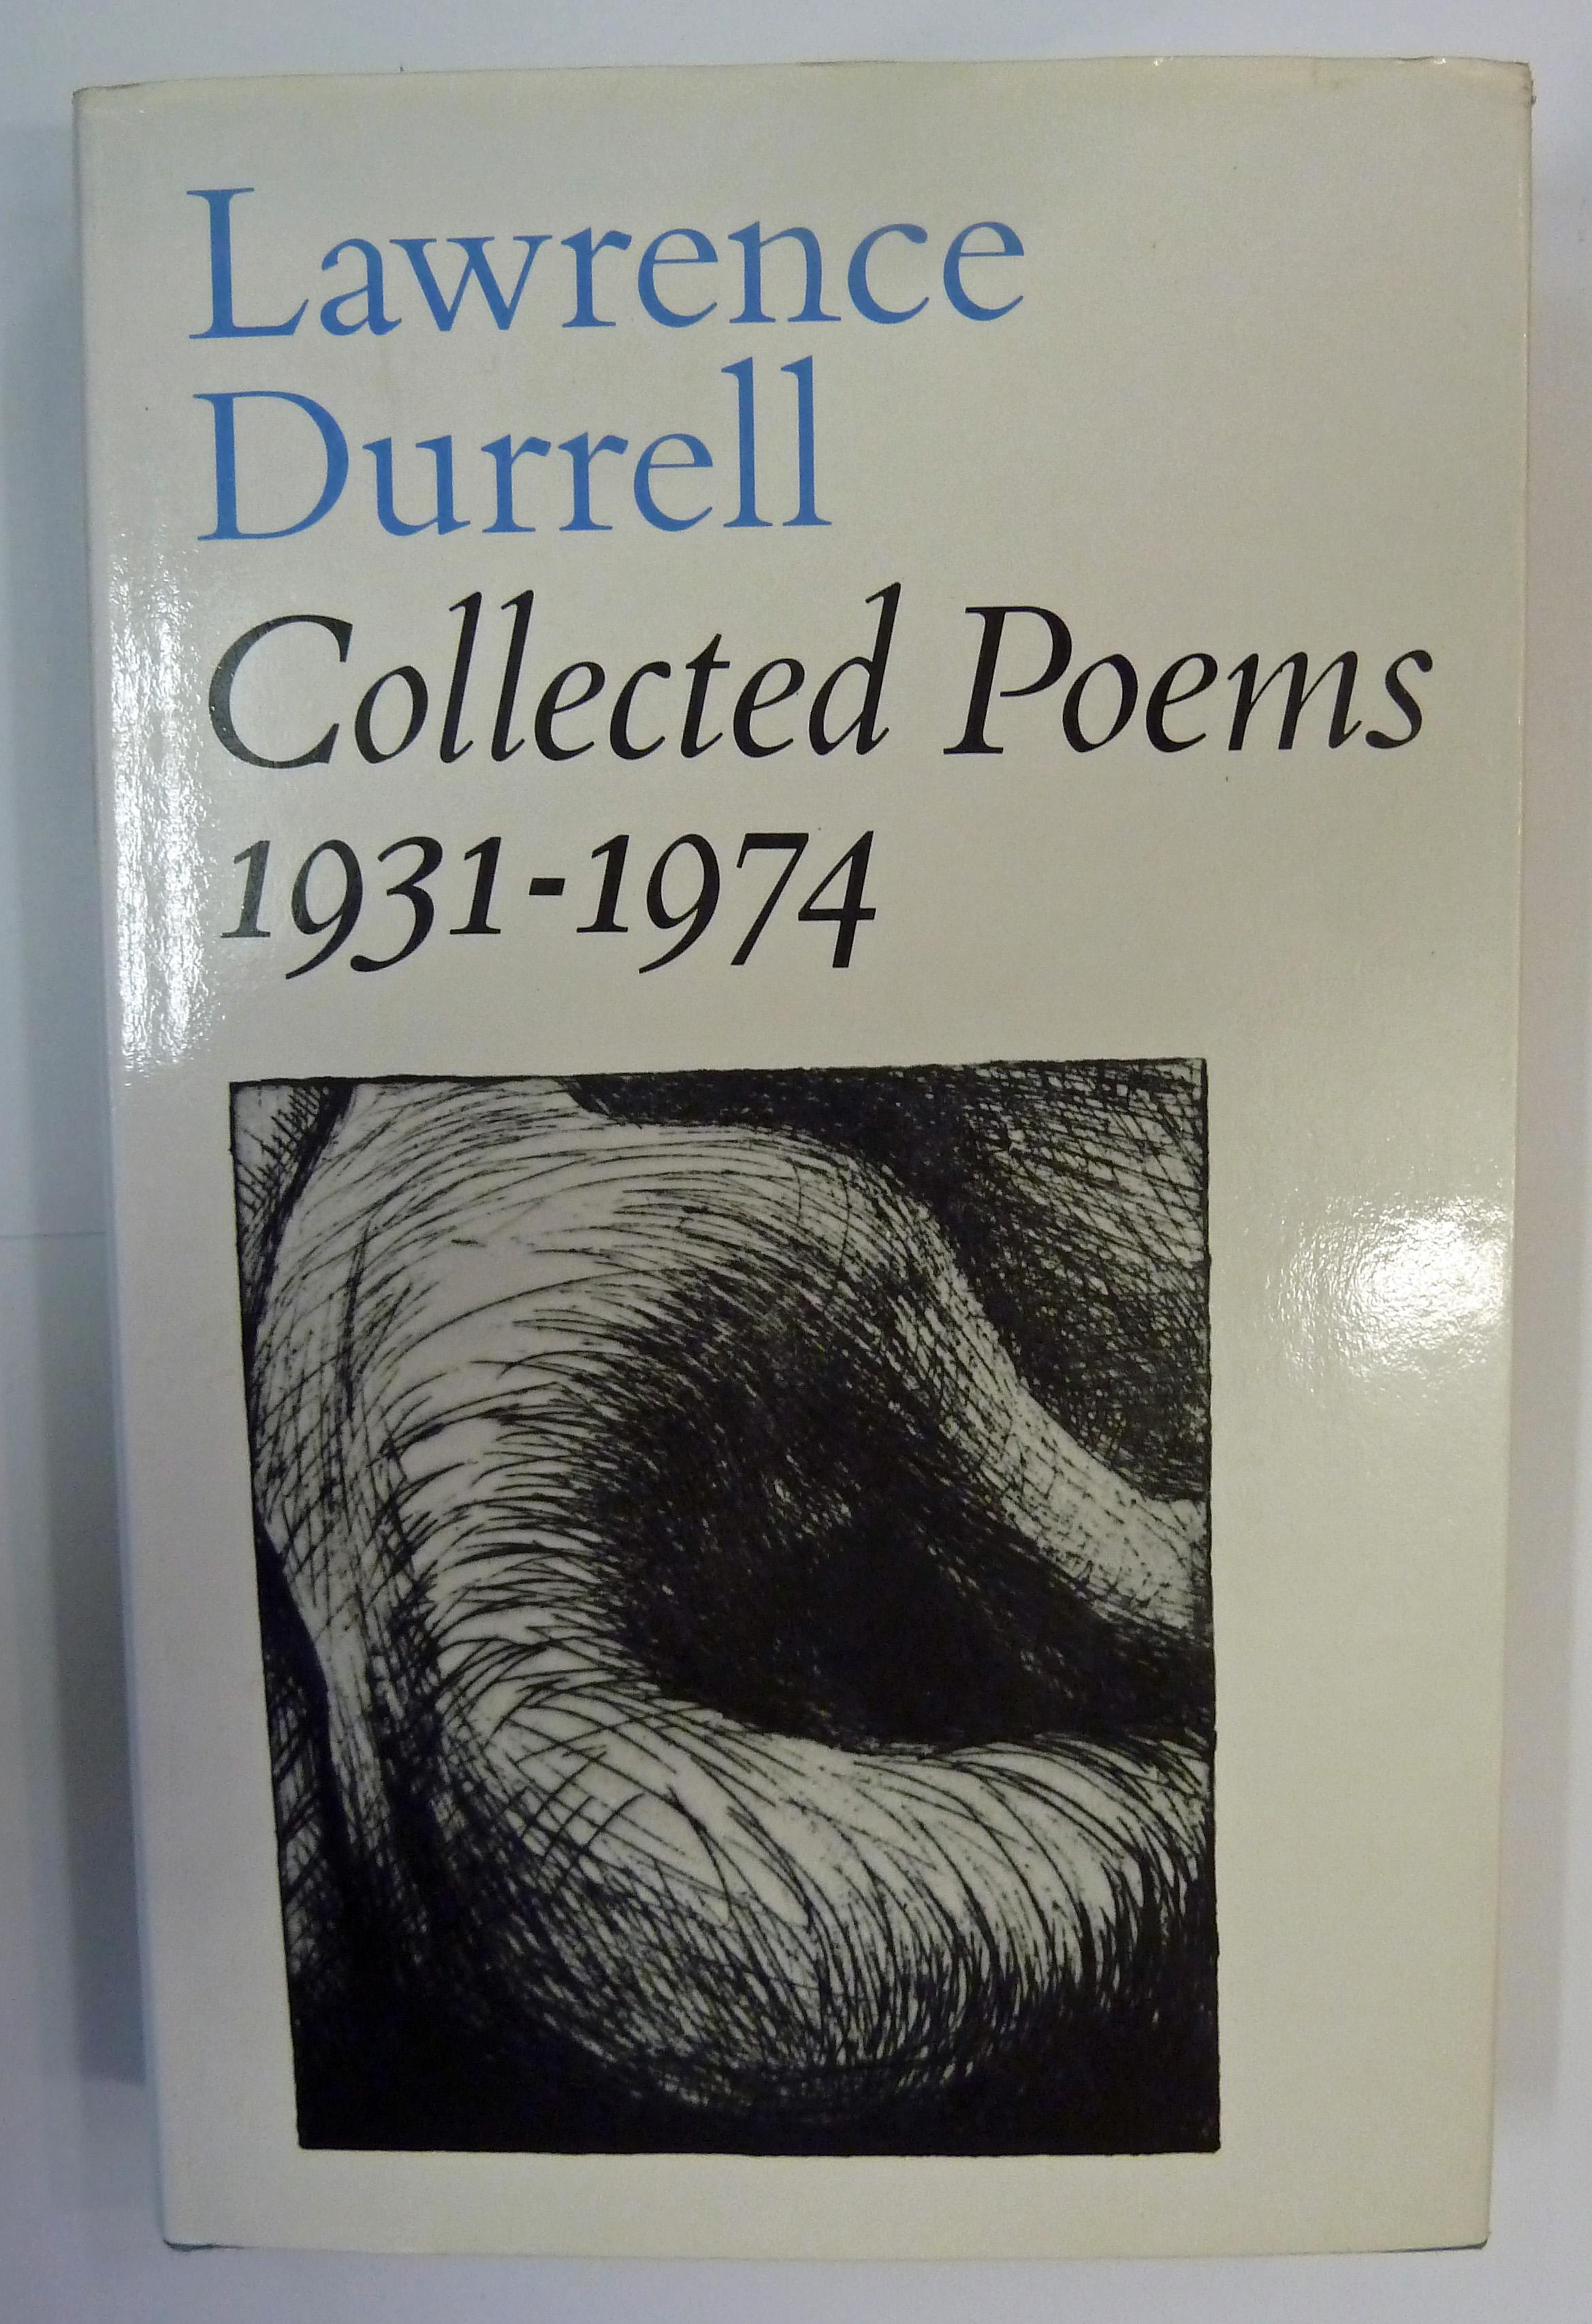 Lawrence Durrell Collected Poems 1931-1974